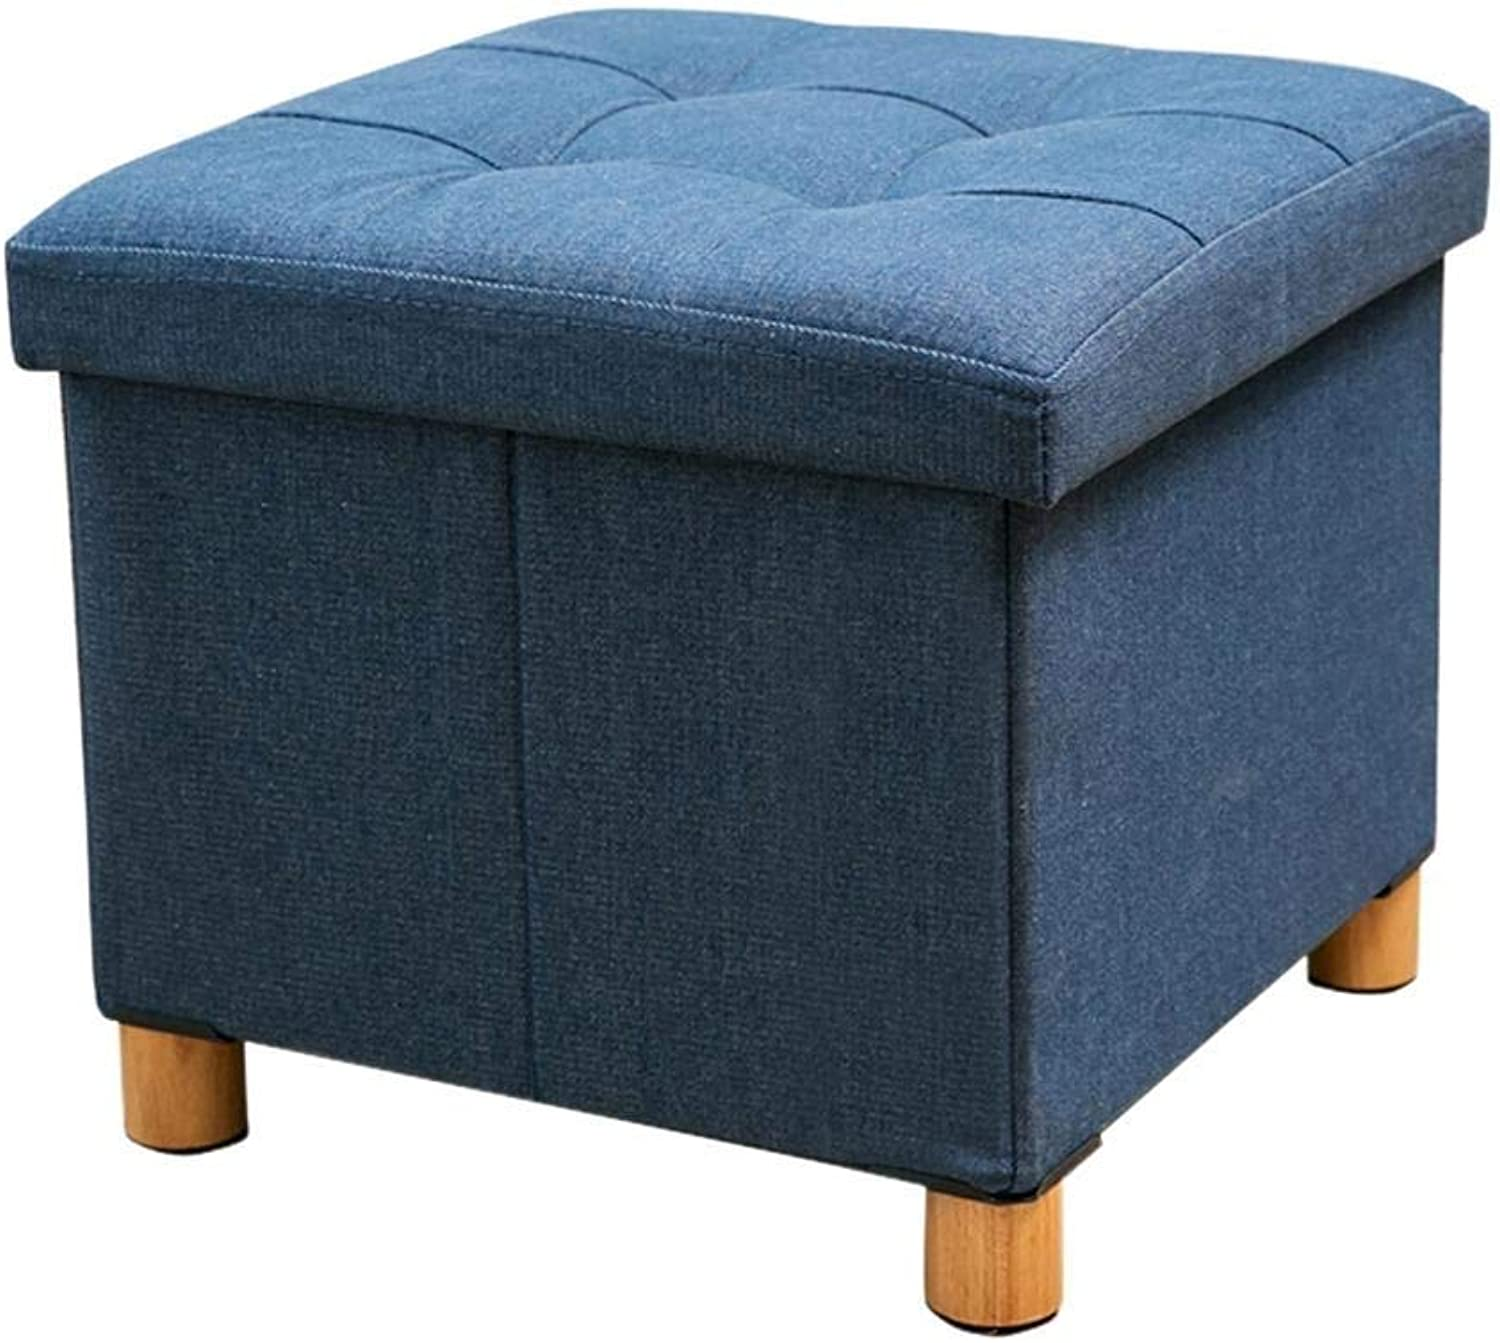 ZYANZ Square Storage Stool with Solid Wood Feet and Removable Cover Storage Box, Change shoes Bench (color   Navy bluee)